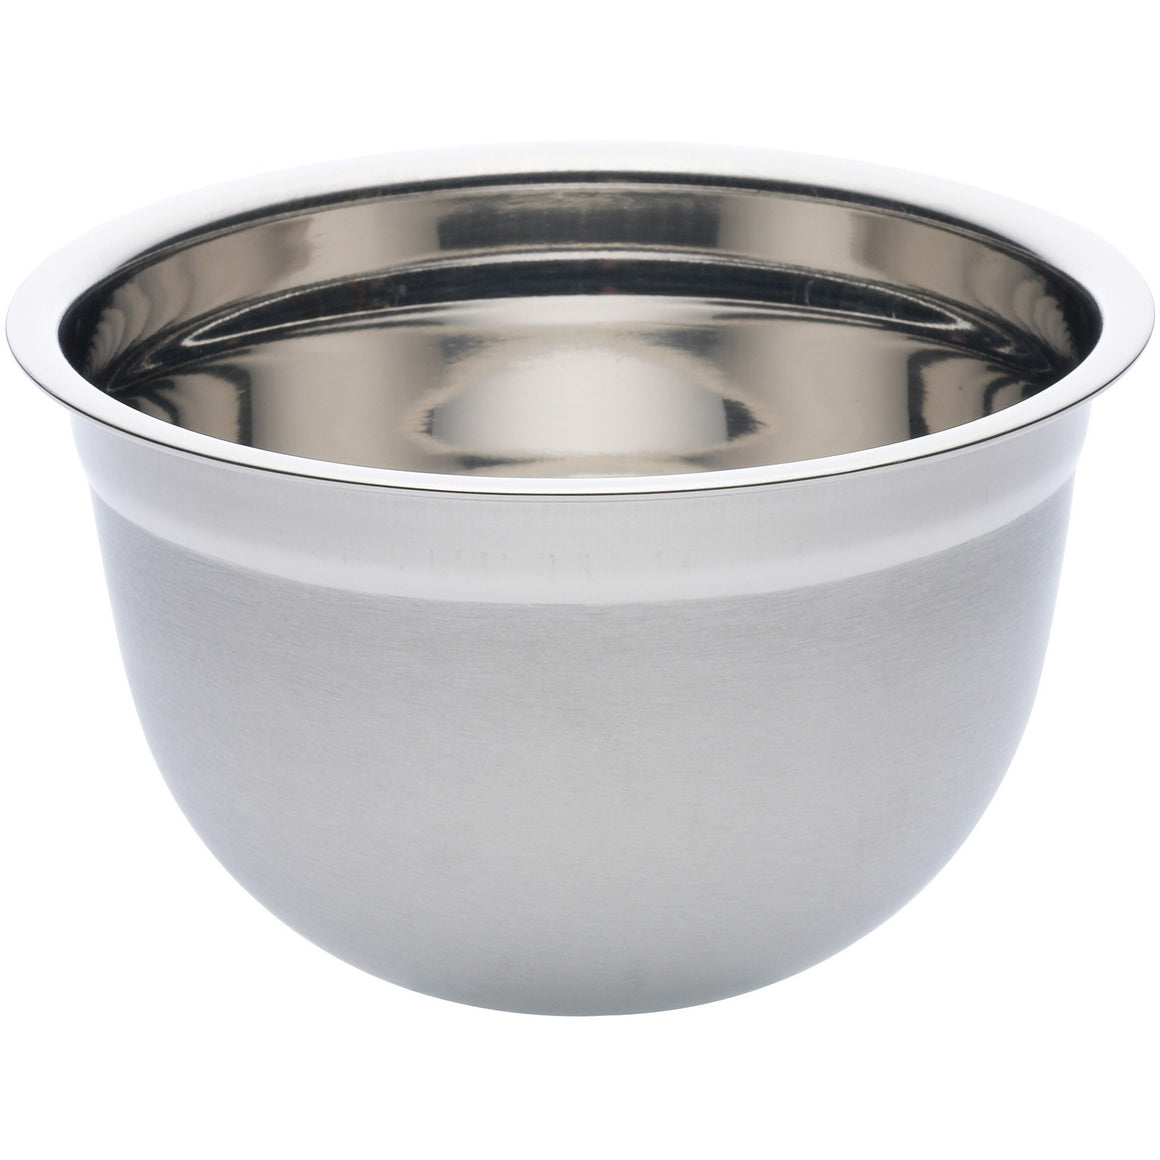 Kitchen Craft 18cm Stainless Steel Bowl